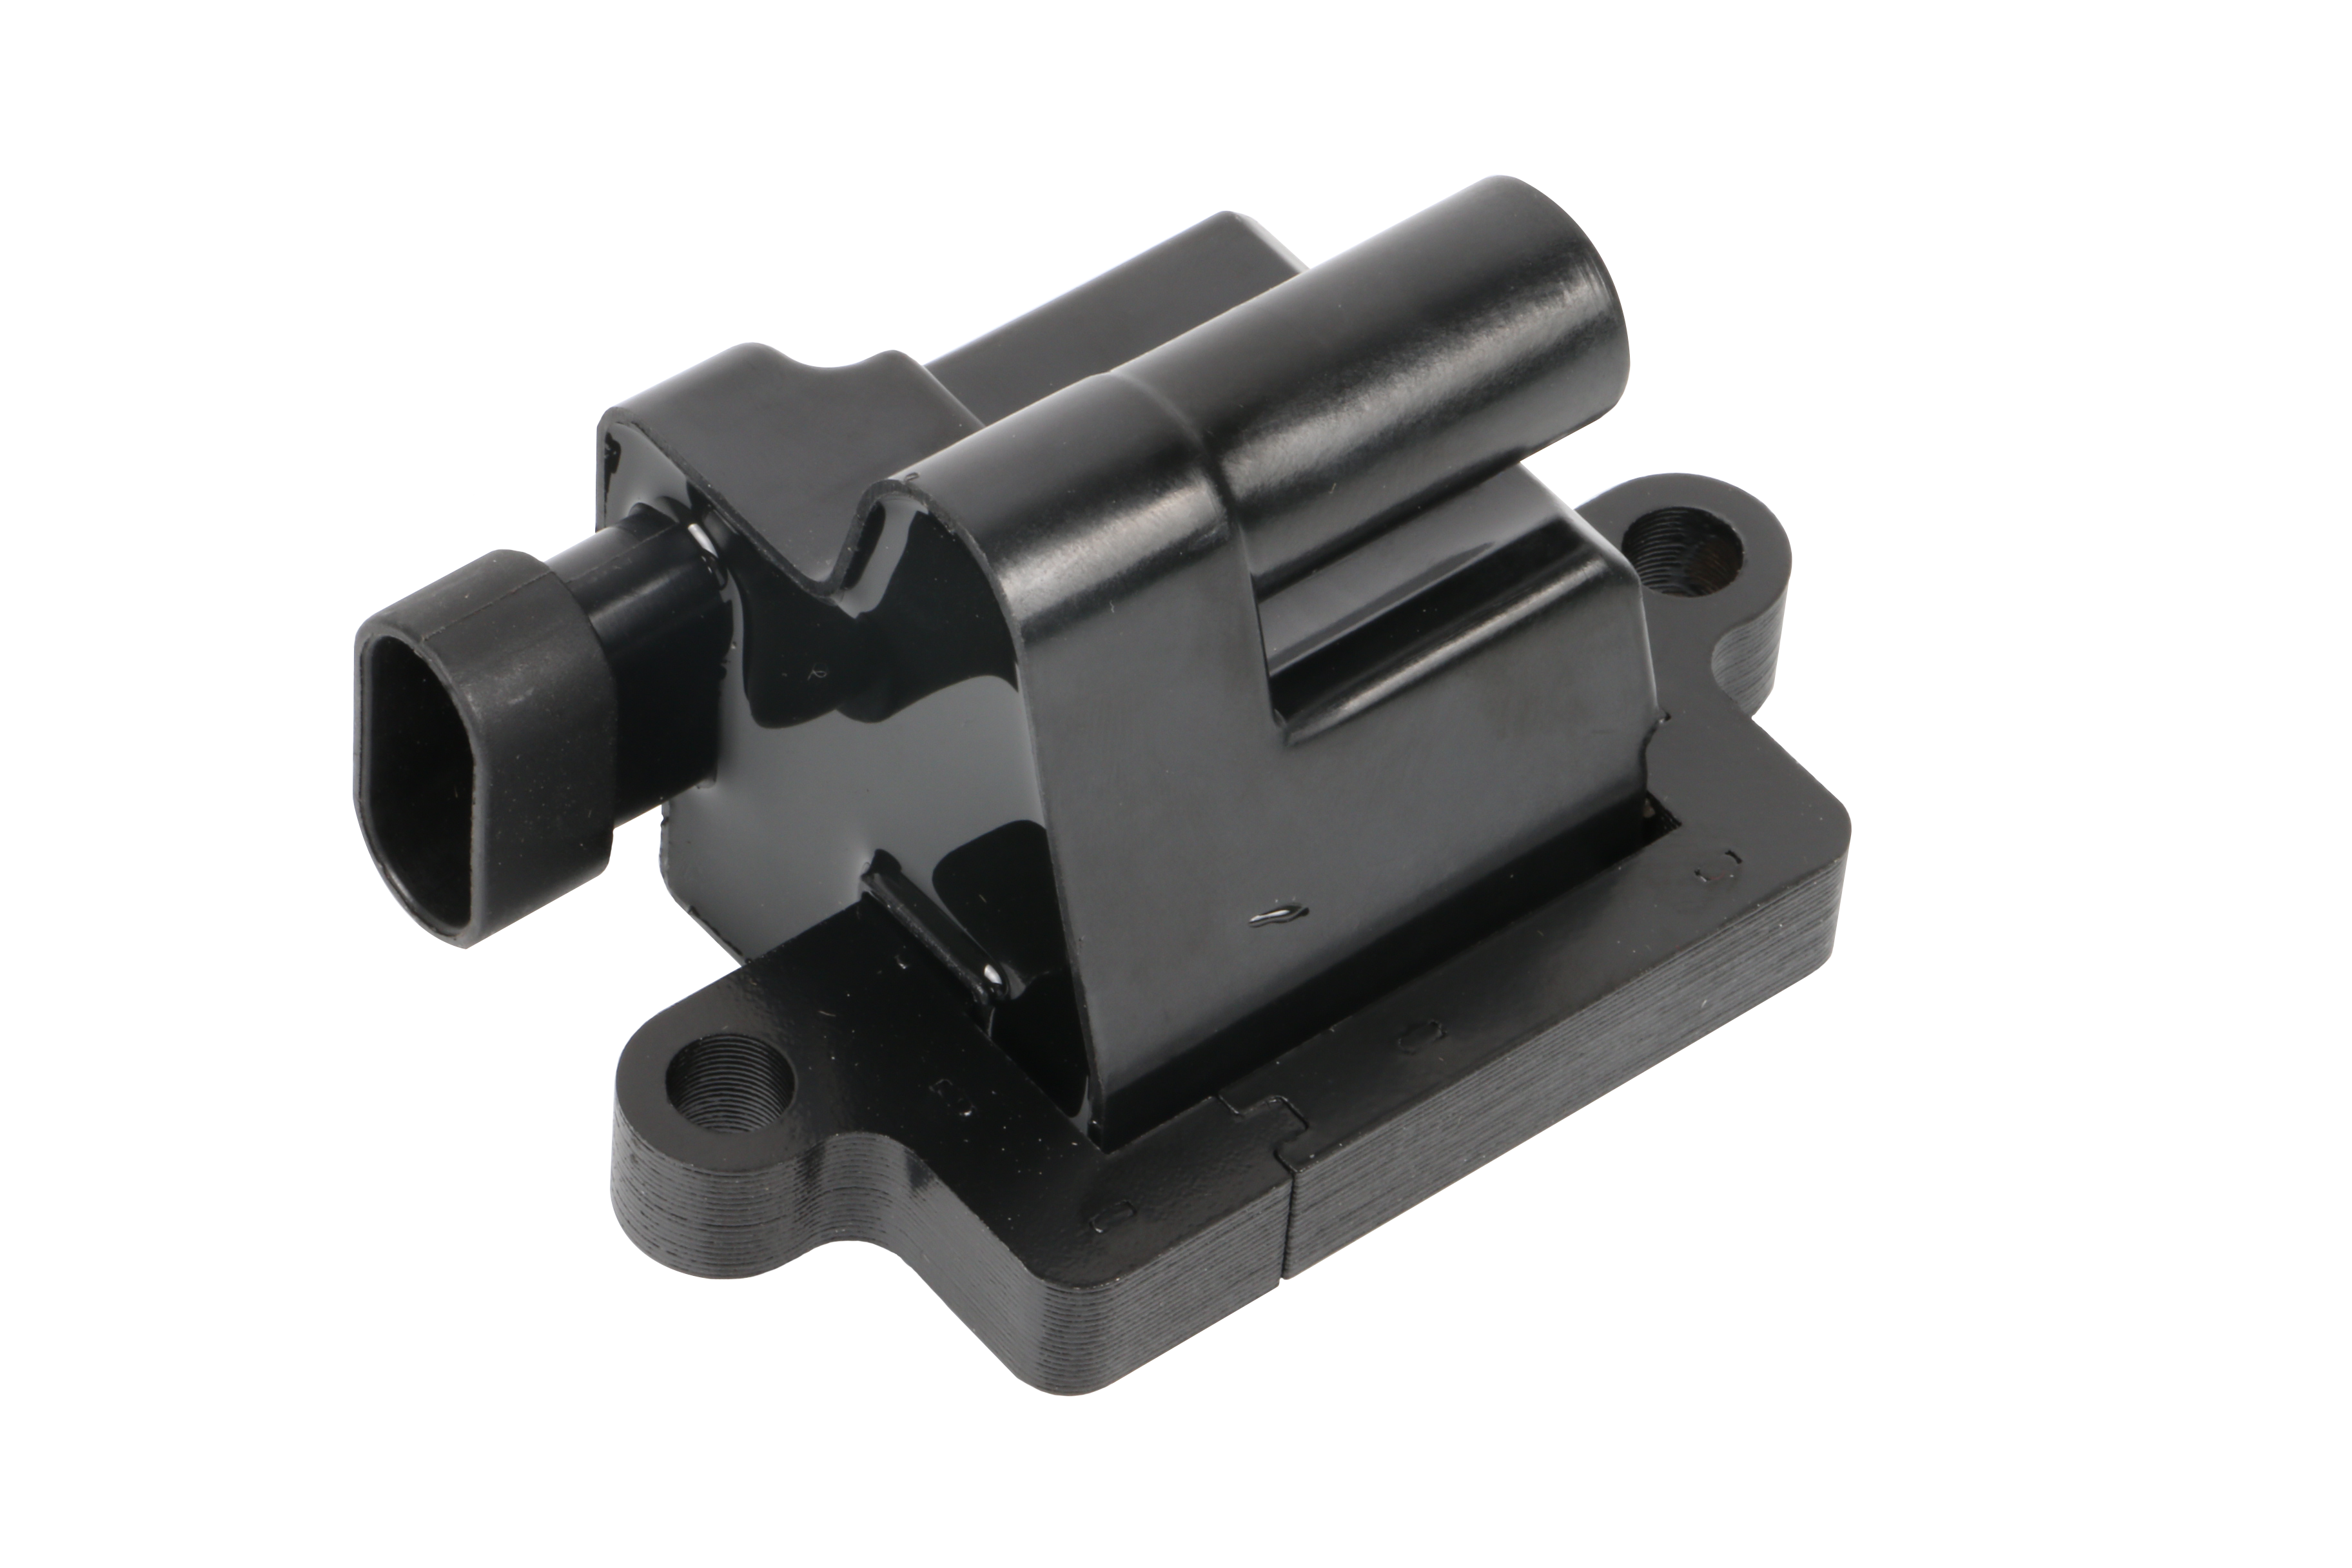 Ignition Coil Pack - Replaces# 12558693, GN10298 - Fits Cadillac Escalade, Chevy Silverado, Avalanche, Express 3500, Suburban, Tahoe, GMC Sierra, Savana, Yukon & more Image